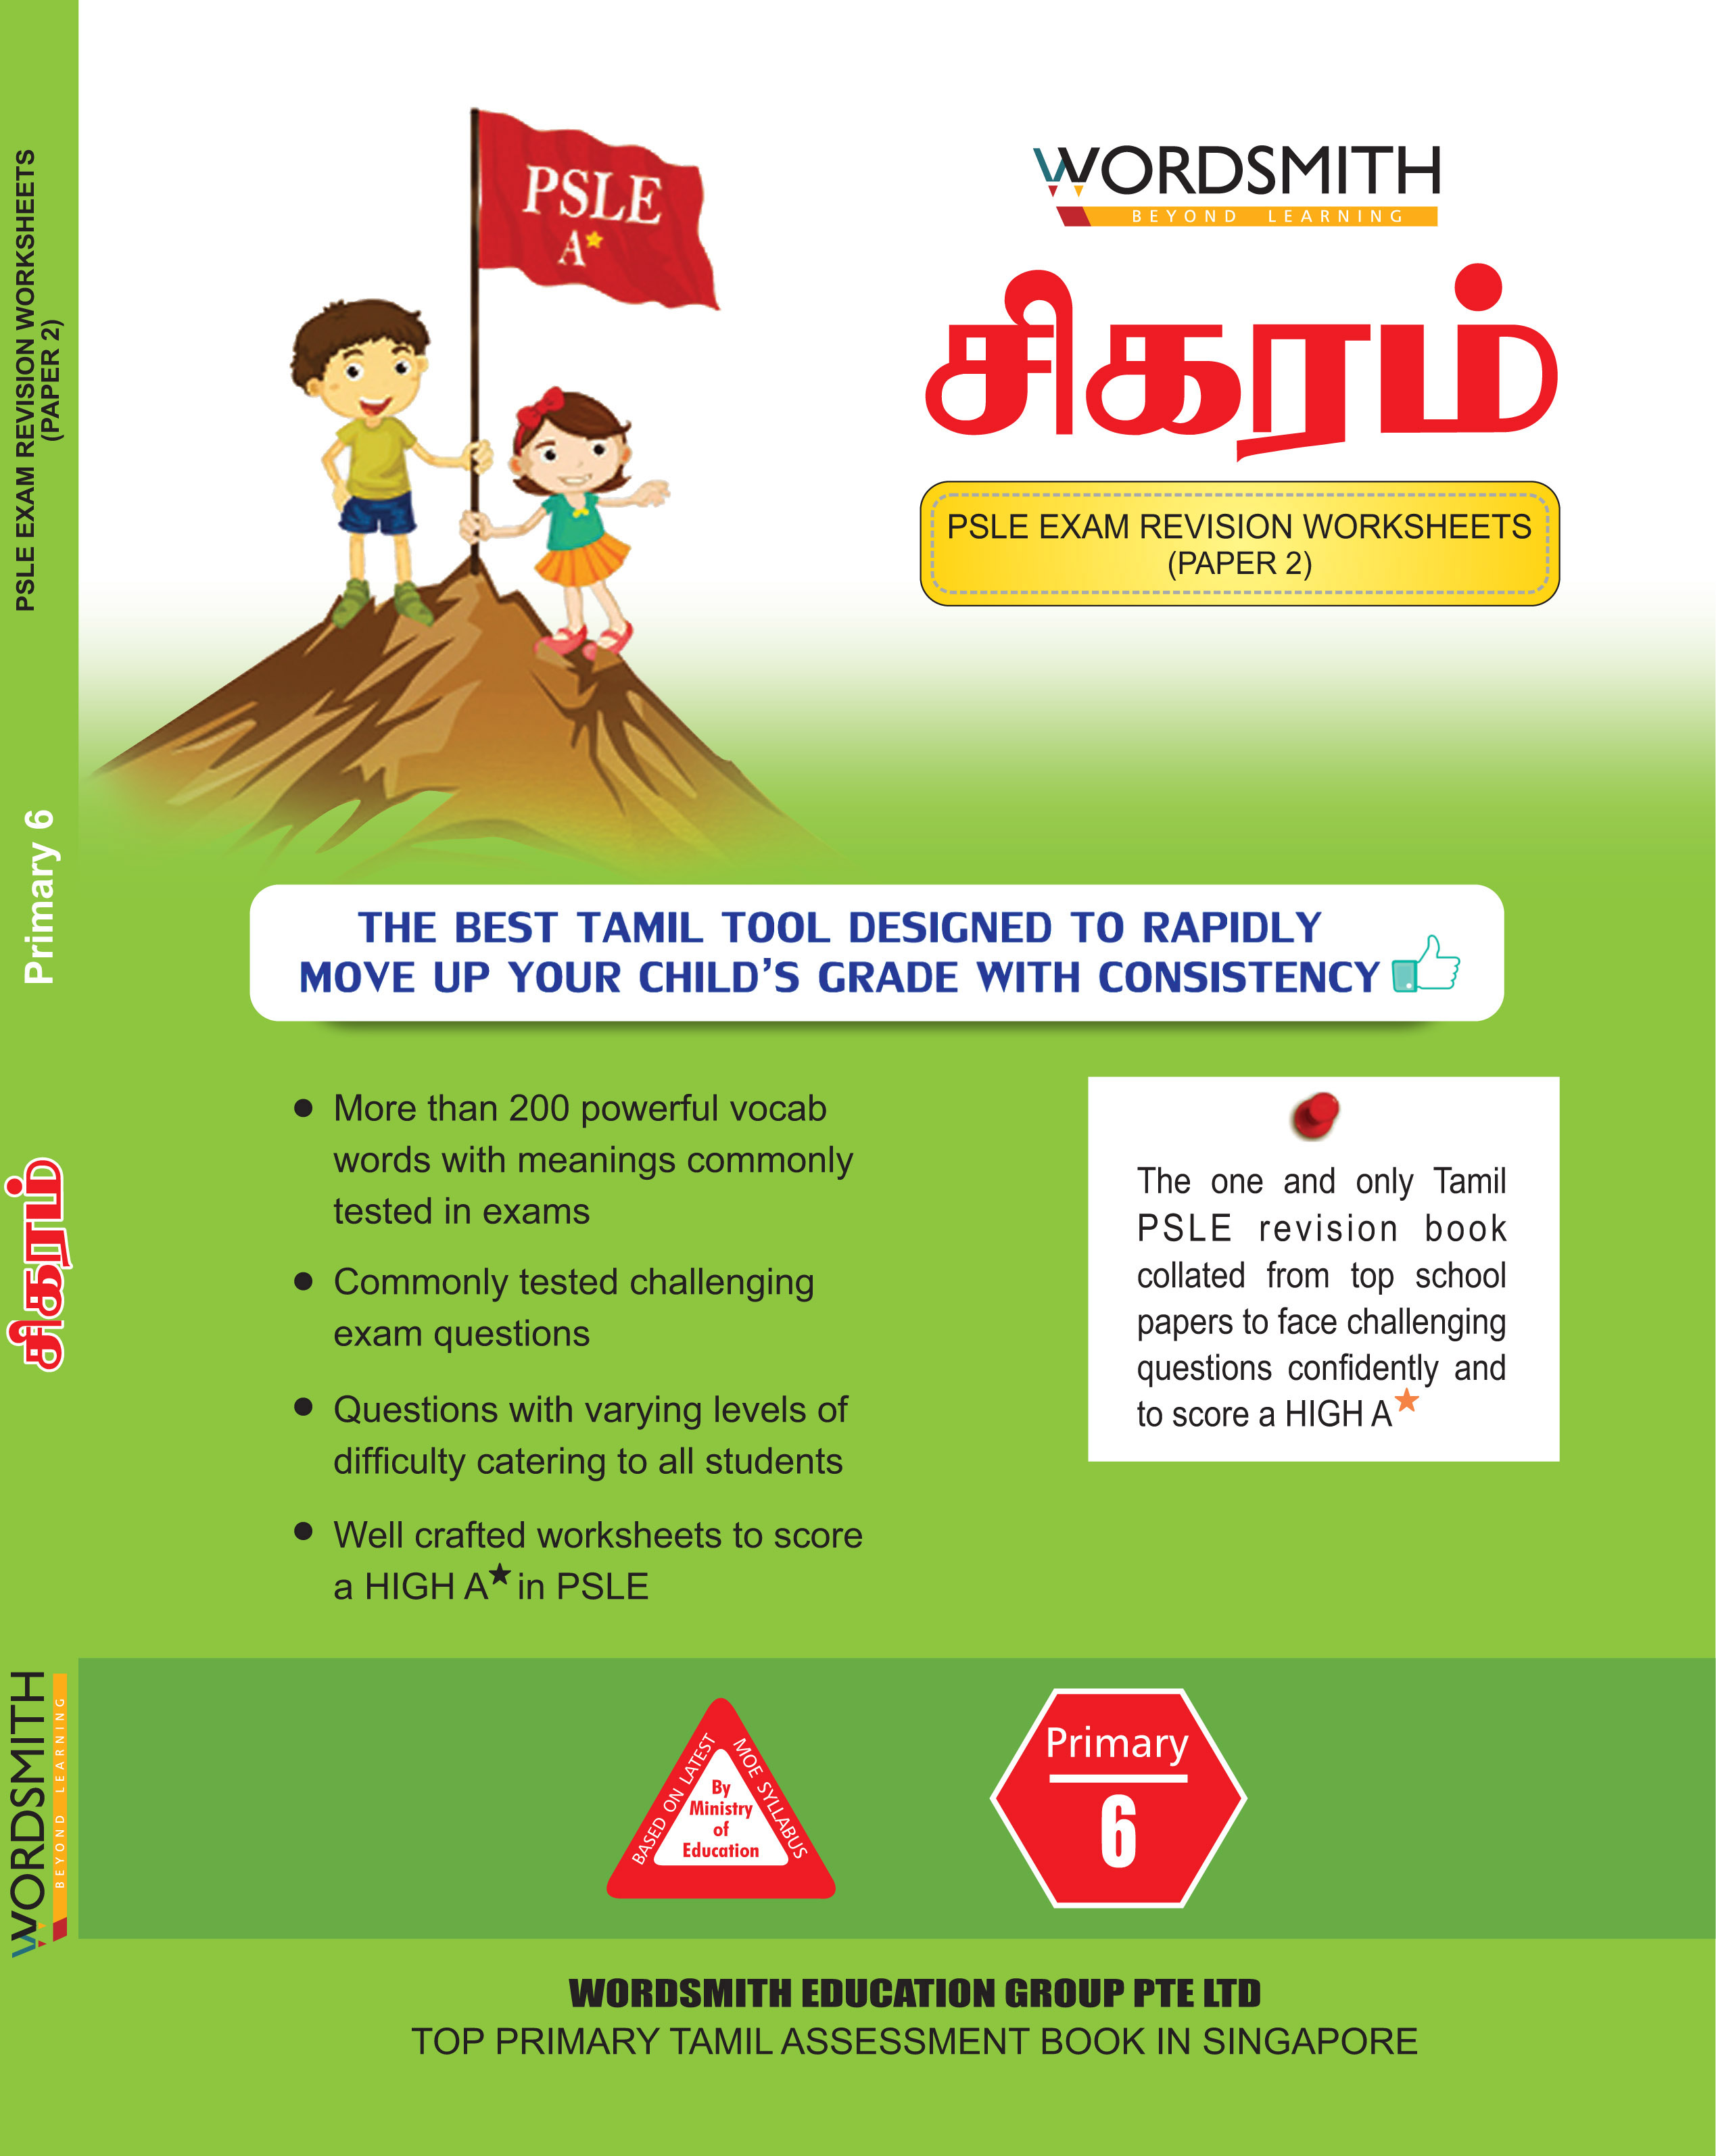 primary tamil | Wordsmith Learning Hub Pte Ltd | Sigaram ...